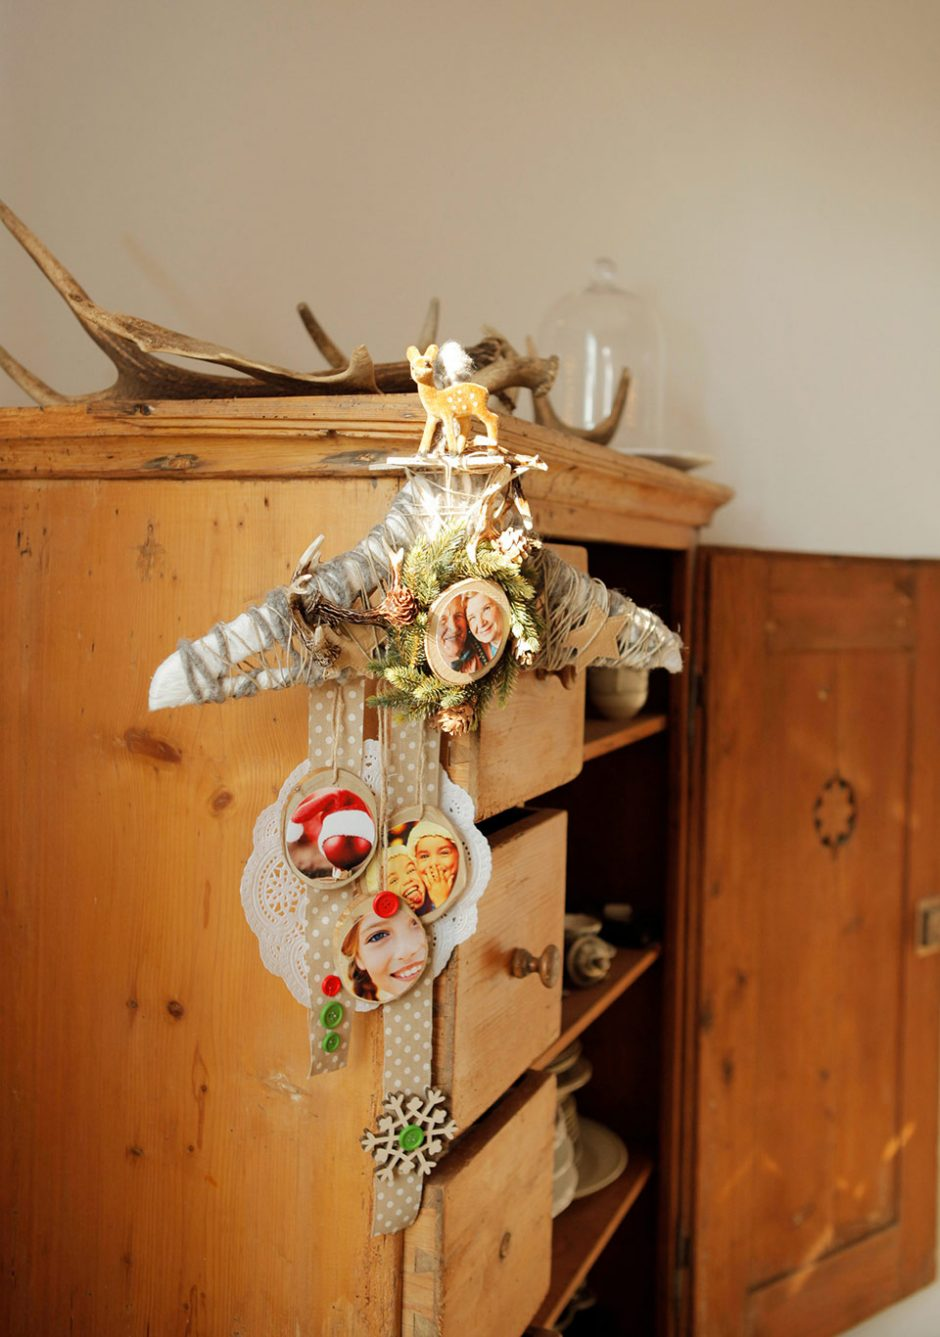 A clothes hanger, bedecked with Christmas decorations and photos, hanging on a cabinet